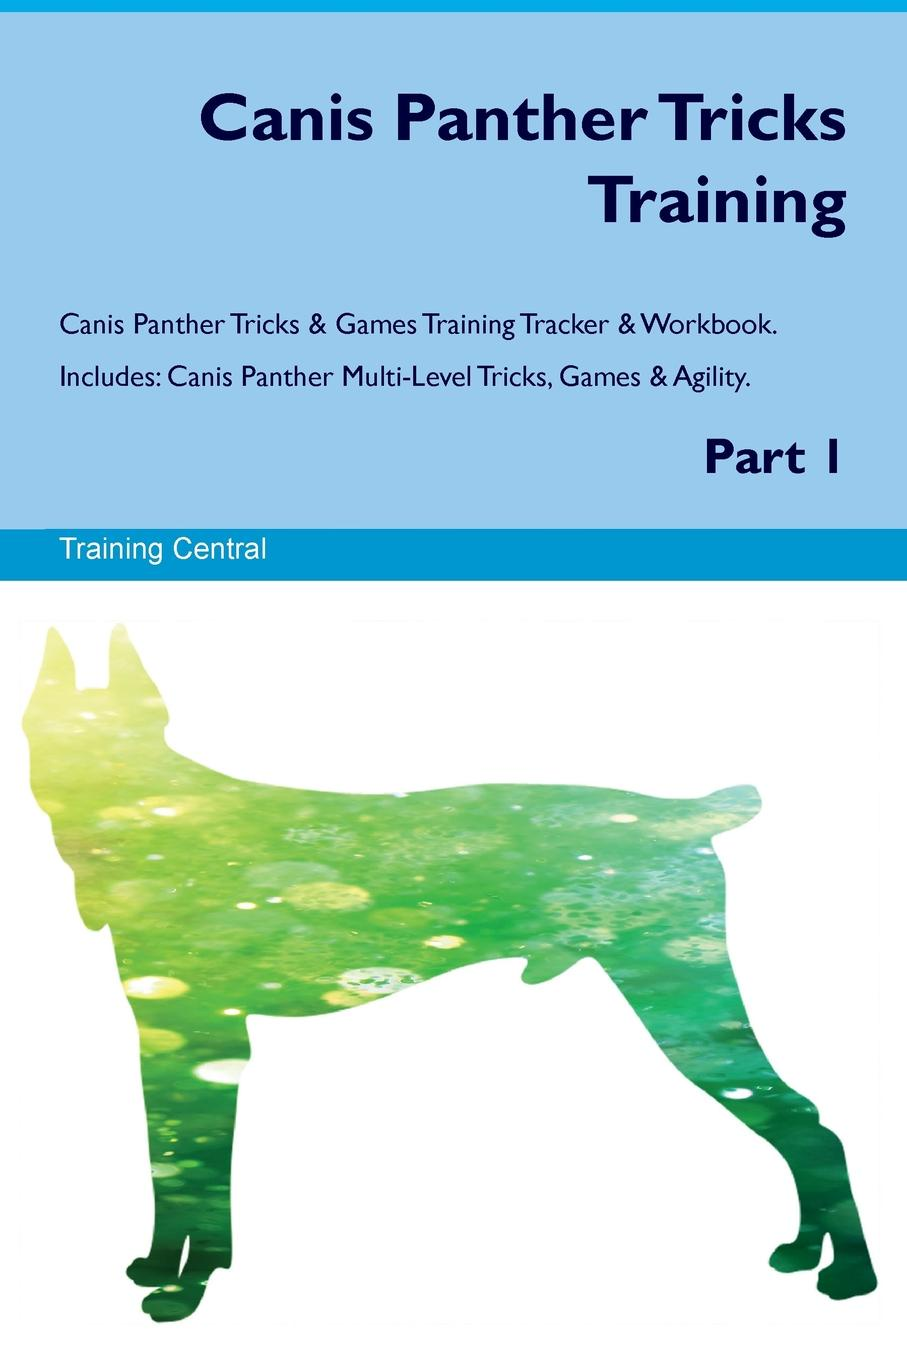 Training Central Canis Panther Tricks Training Canis Panther Tricks & Games Training Tracker & Workbook. Includes. Canis Panther Multi-Level Tricks, Games & Agility. Part 1 цена и фото